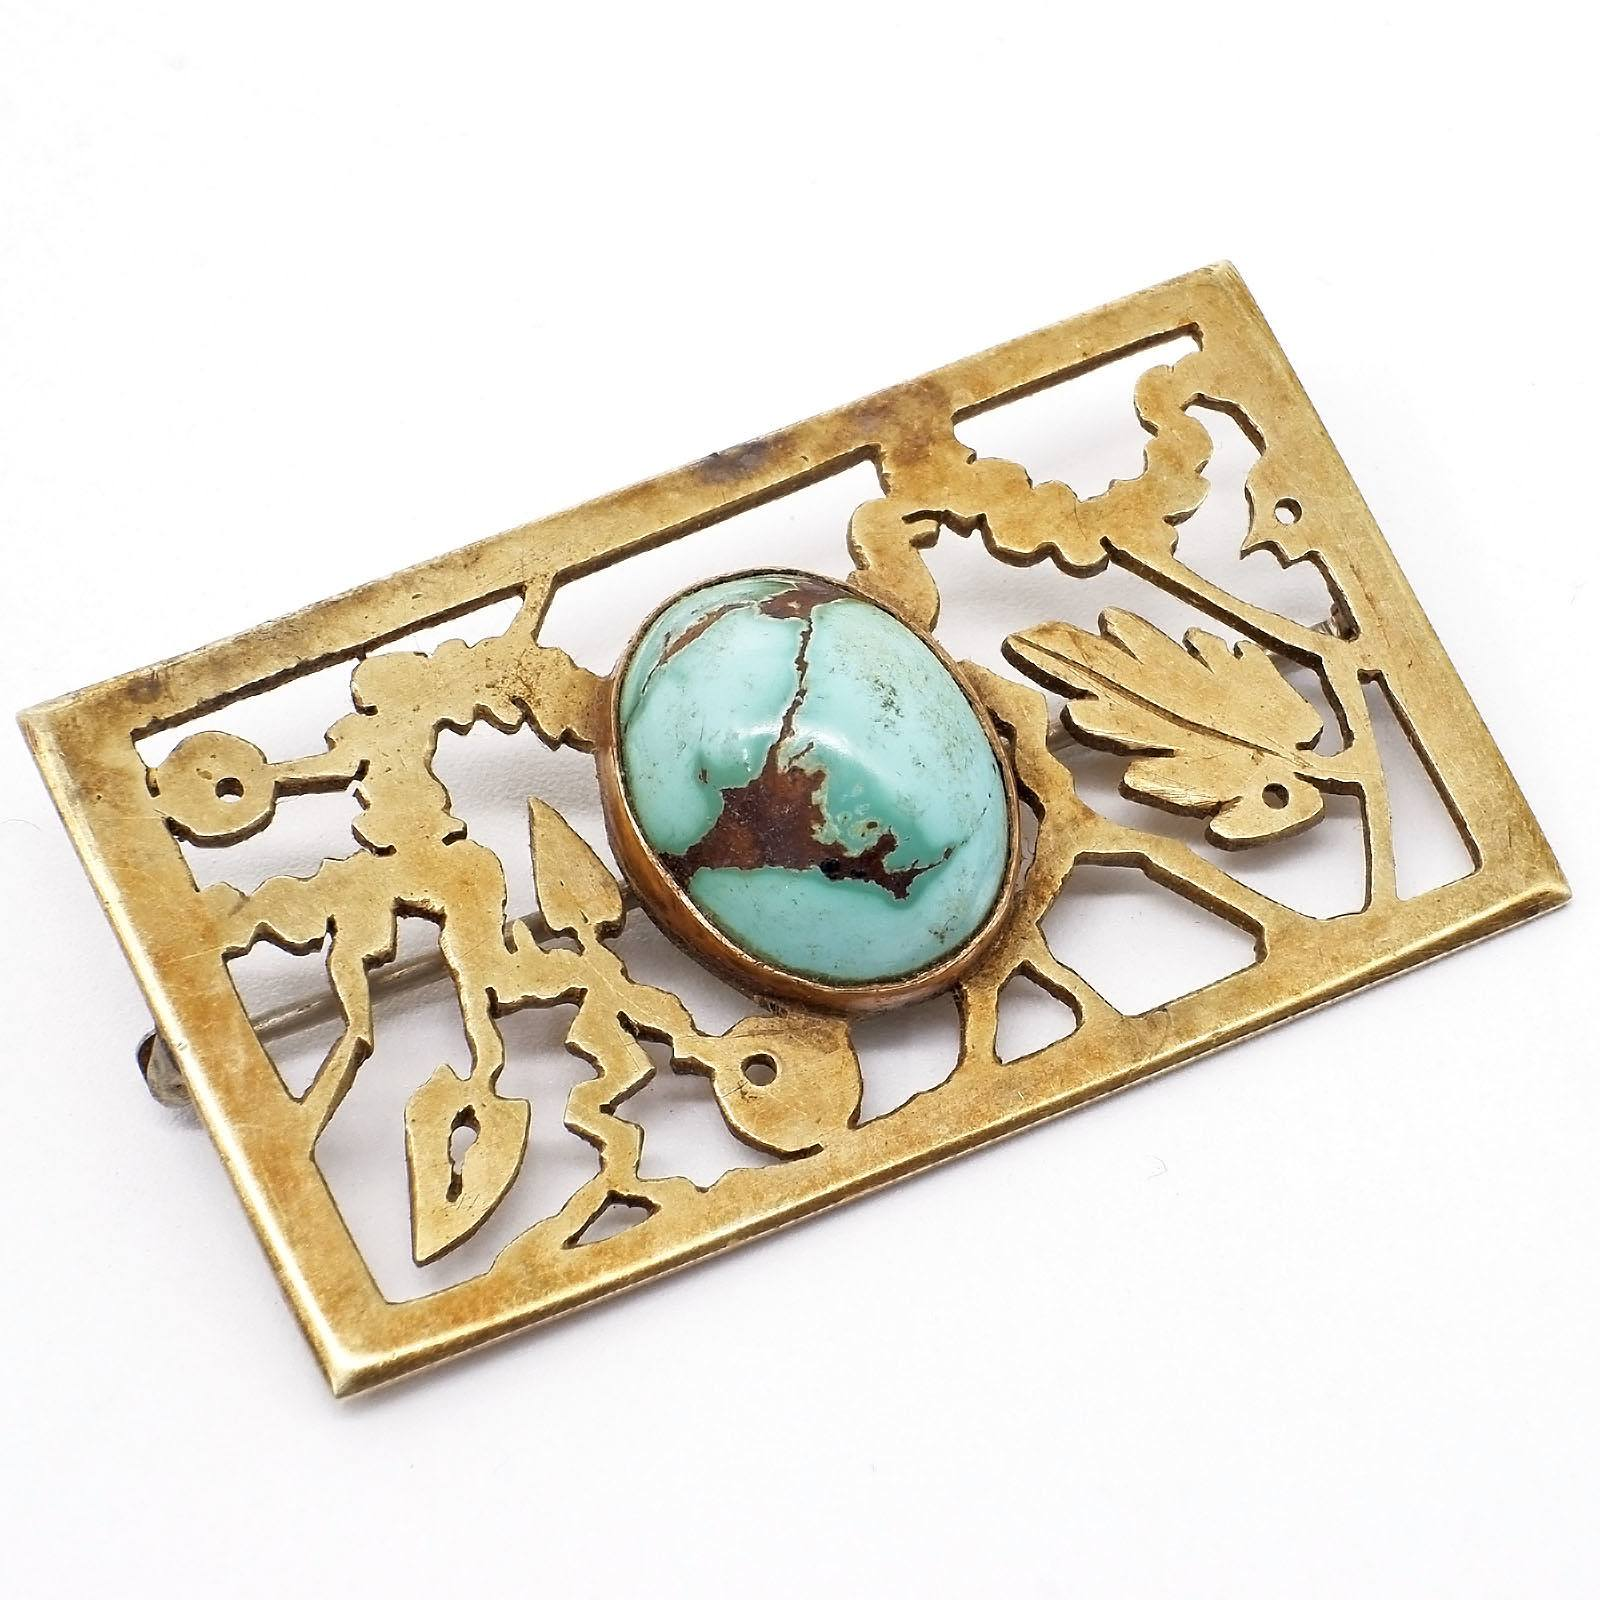 'Large 9ct Yellow Gold Square Pierced Floral Designed Brooch in Centre an Oval Cabochon of Turquoise, 12.5g'